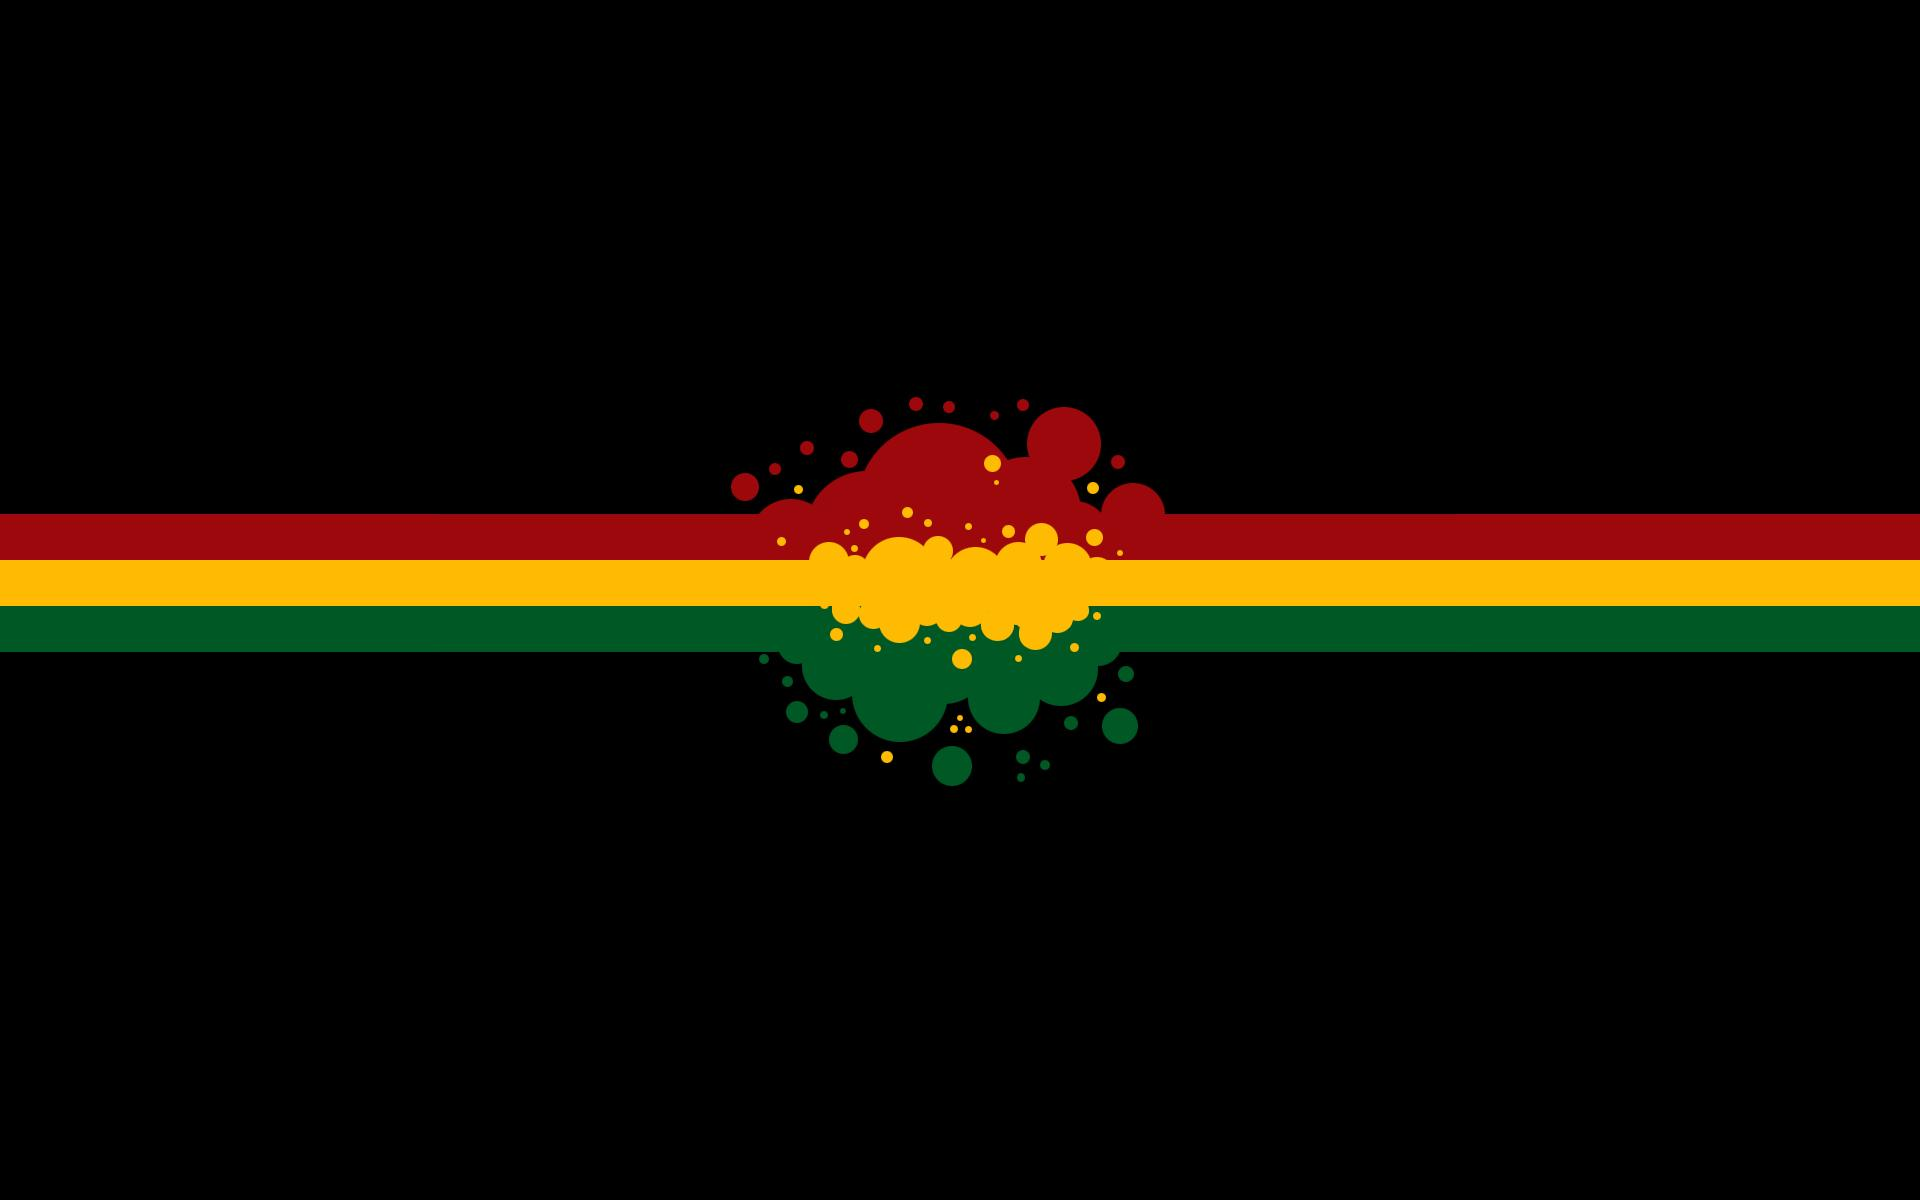 Cool Lion Wallpapers Hd Reggae Backgrounds Wallpaper Cave